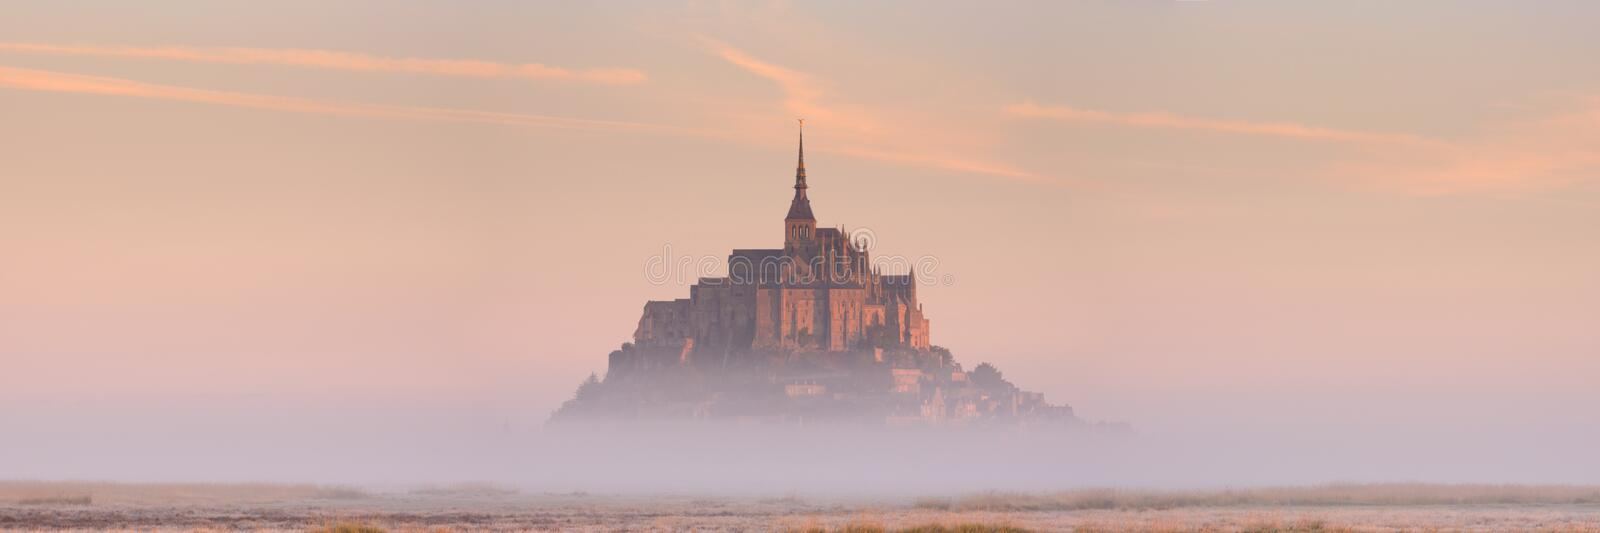 Le Mont Saint Michel in Normandy, France at sunrise. Le Mont Saint Michel in Normandy, France on a foggy morning at sunrise stock image